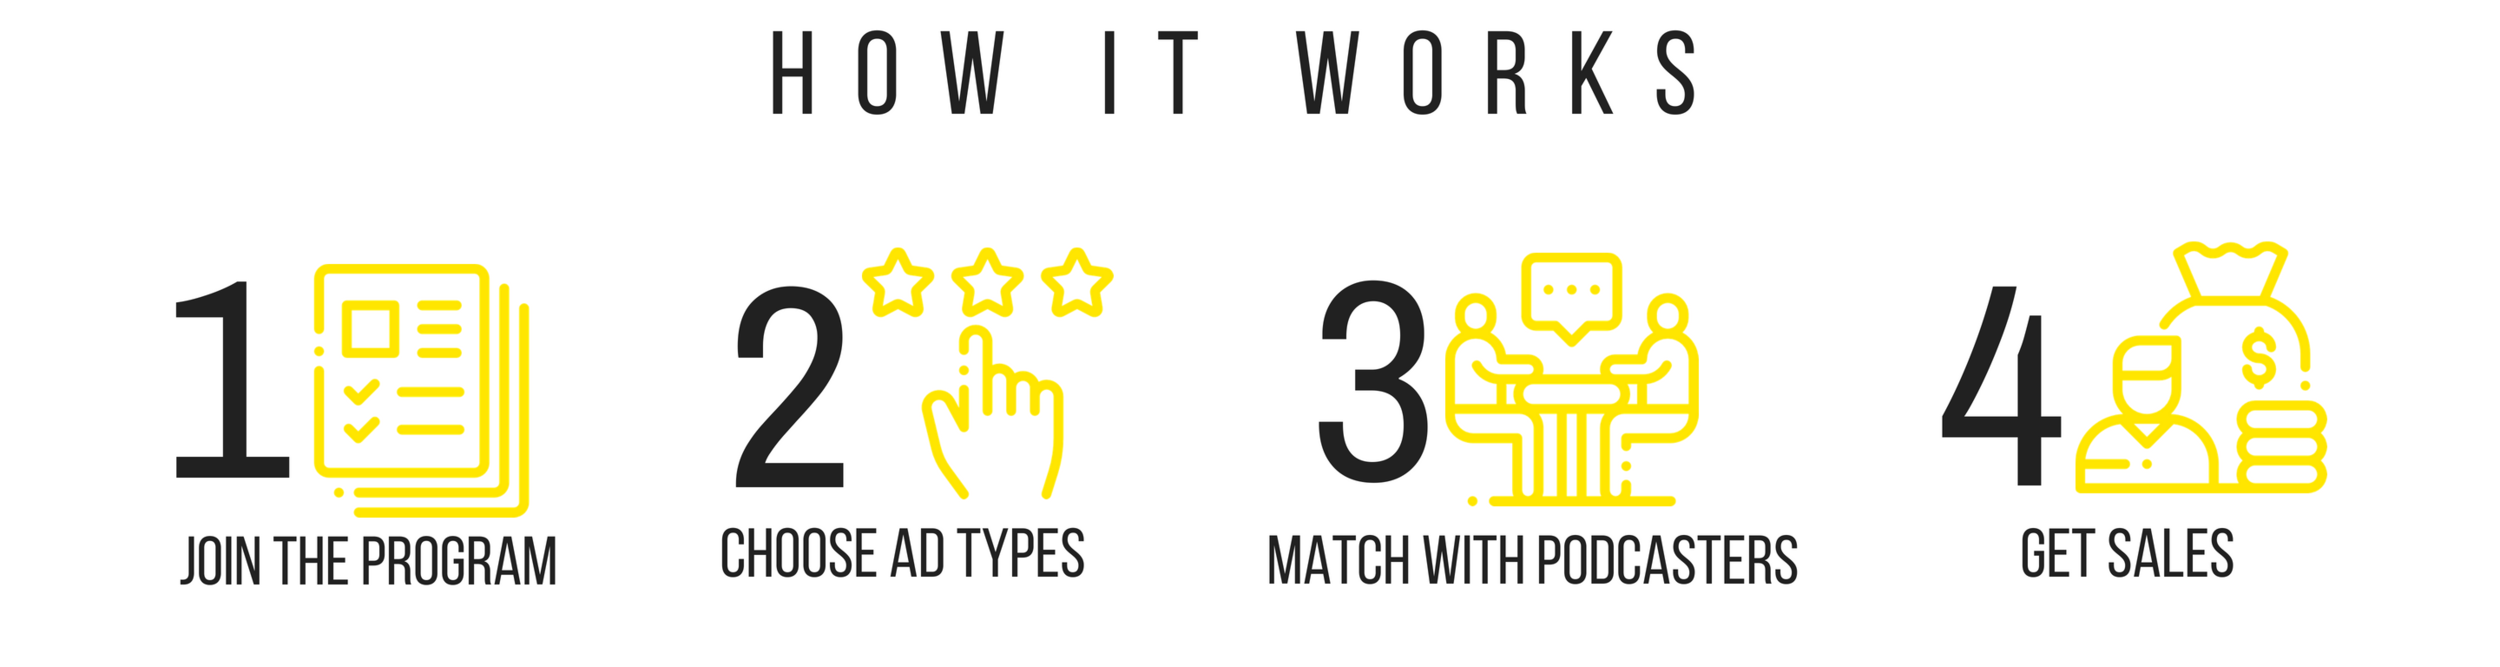 advertiser how it works graphic.png